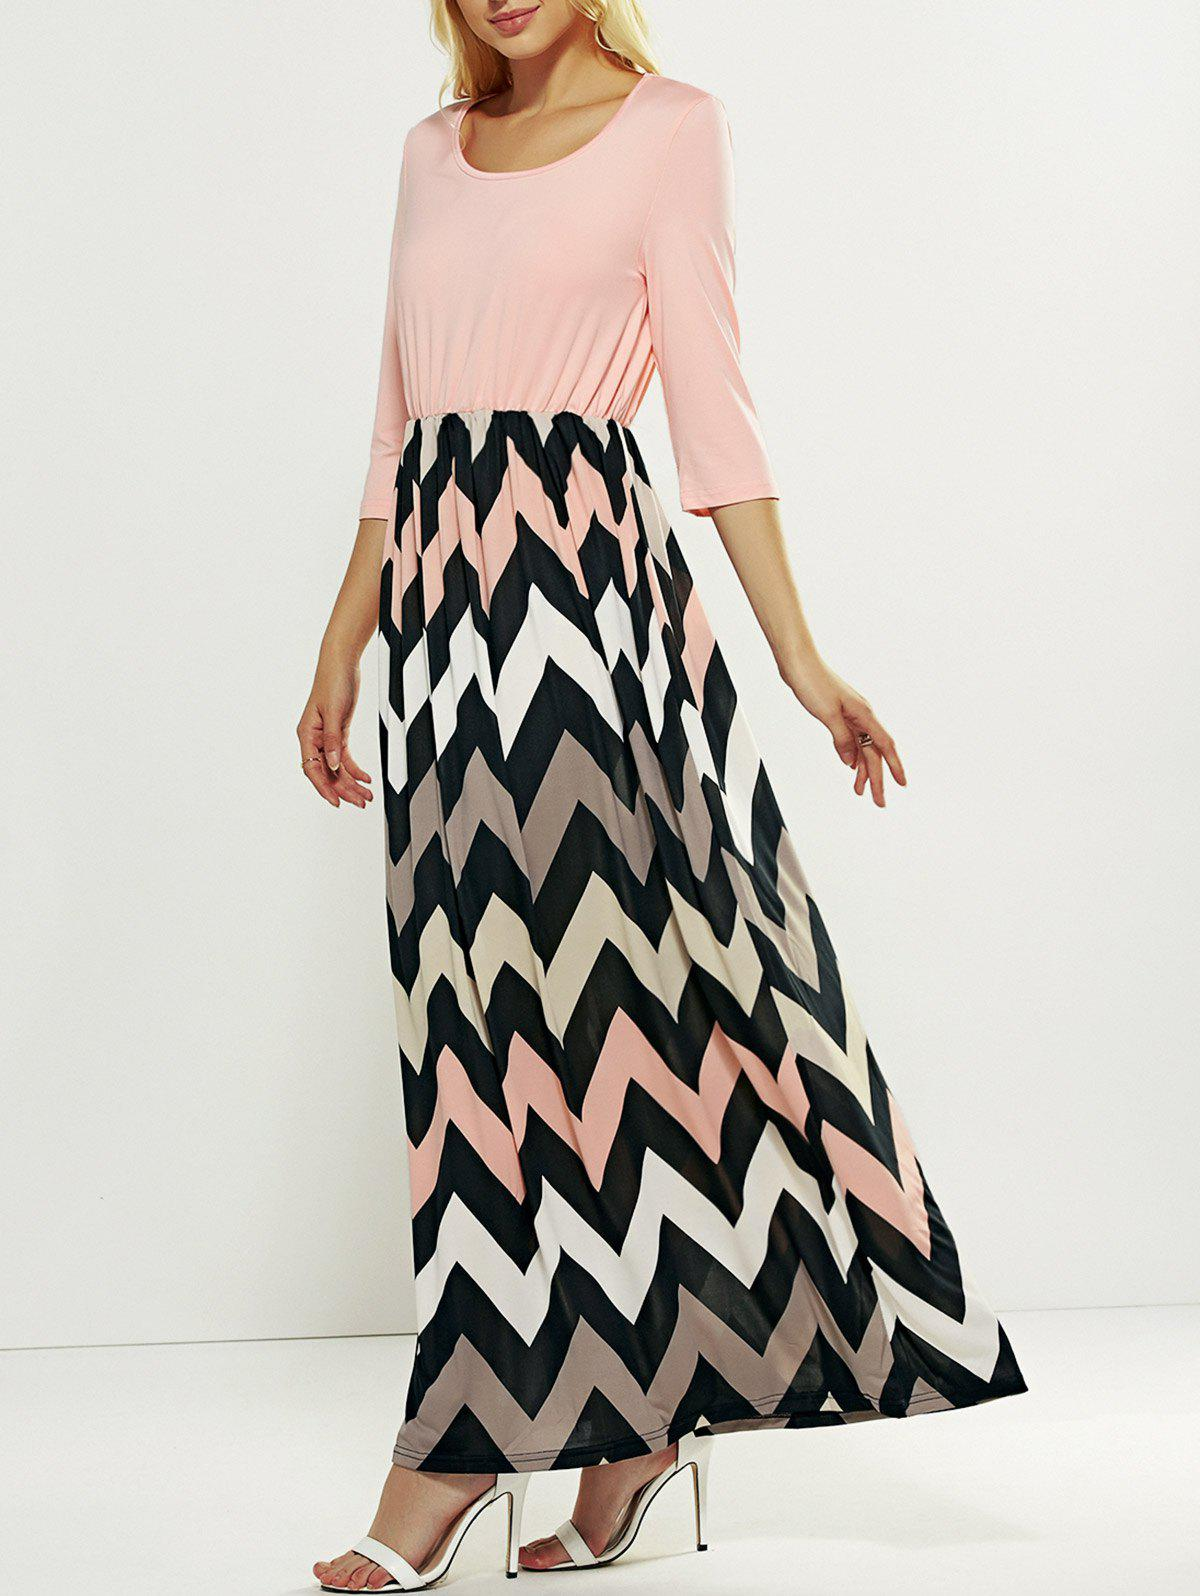 Zig Zag Striped Maxi Dress pontoon21 zanu zag вокер купить